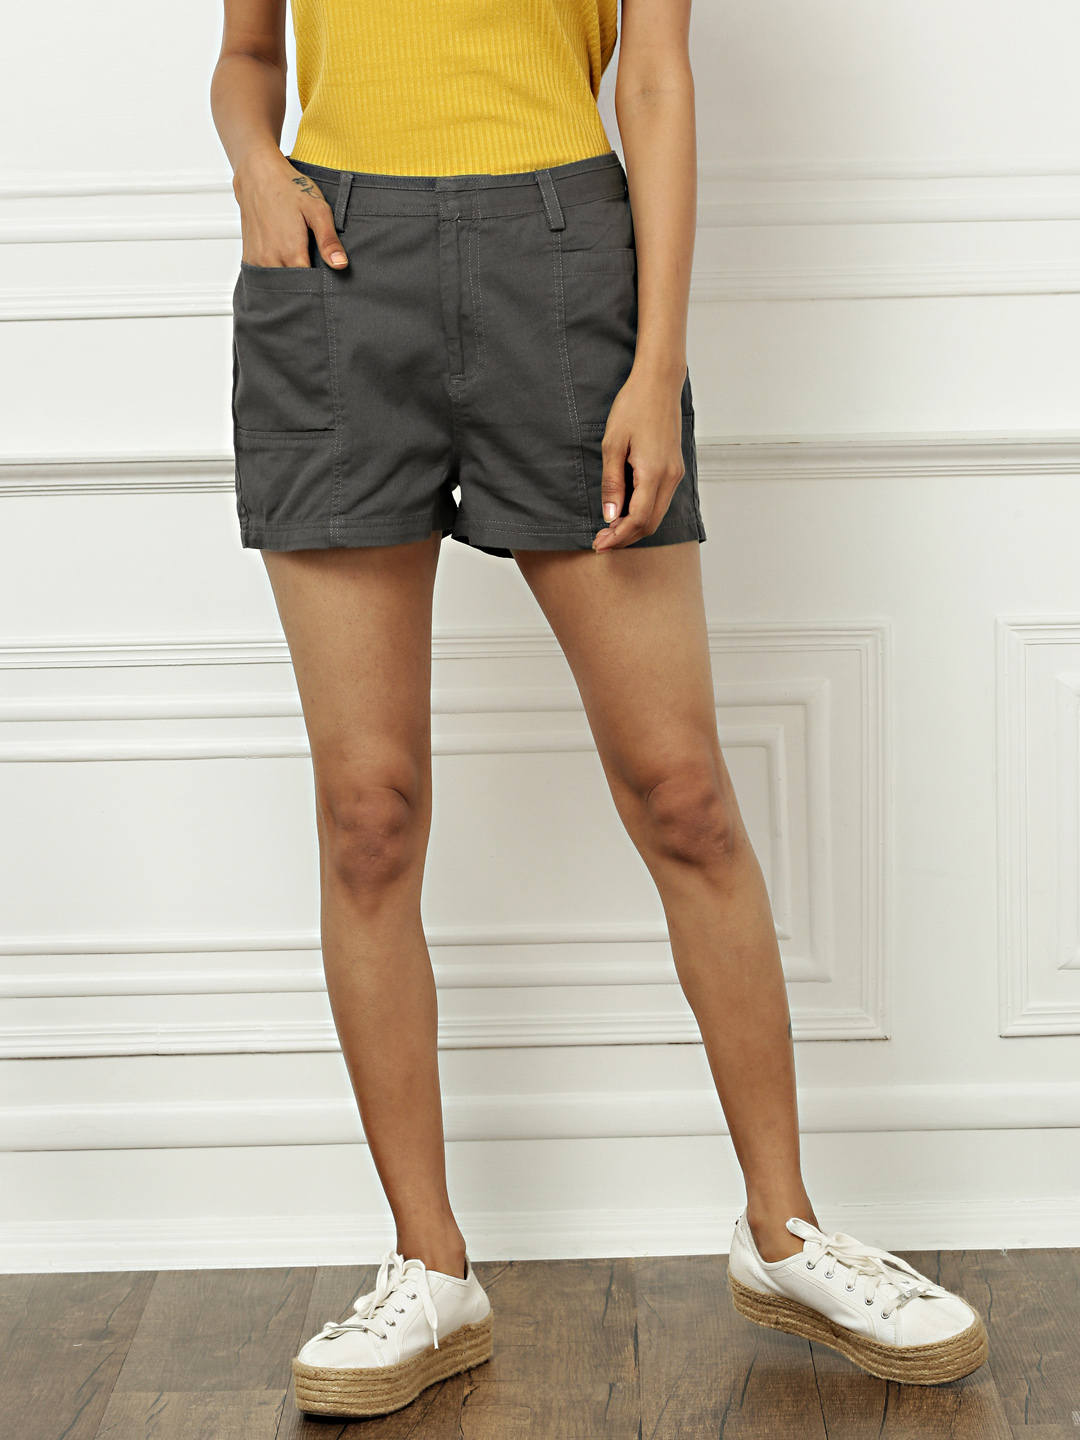 all about you from Deepika Padukone Women Charcoal Grey Solid Regular Fit Regular Shorts Price in India